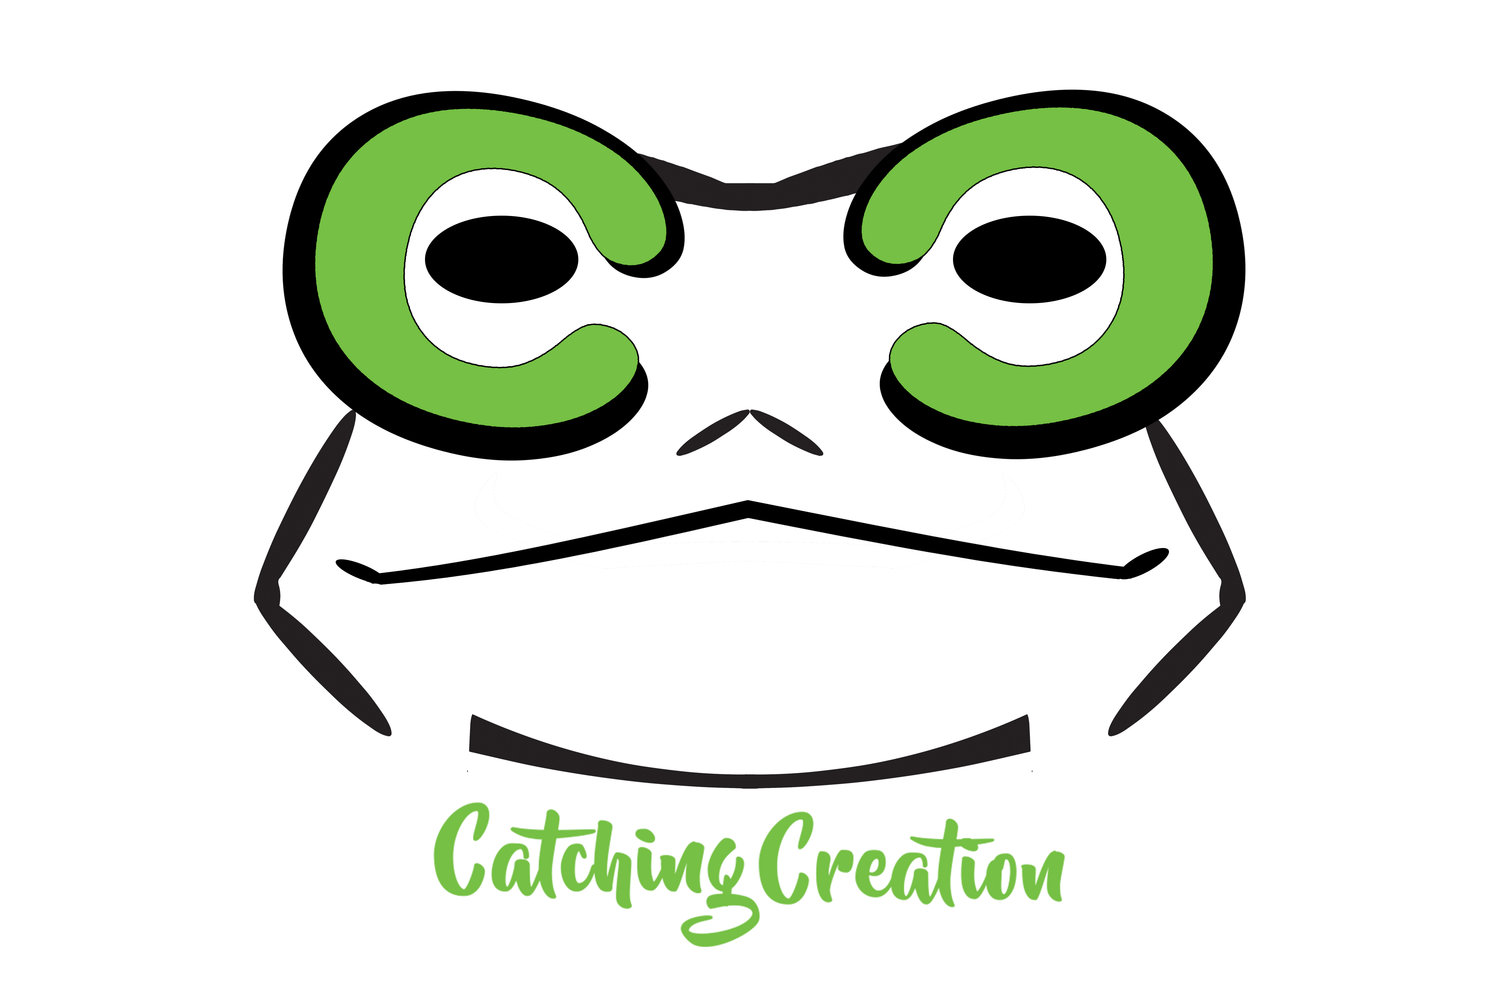 Catching Creation